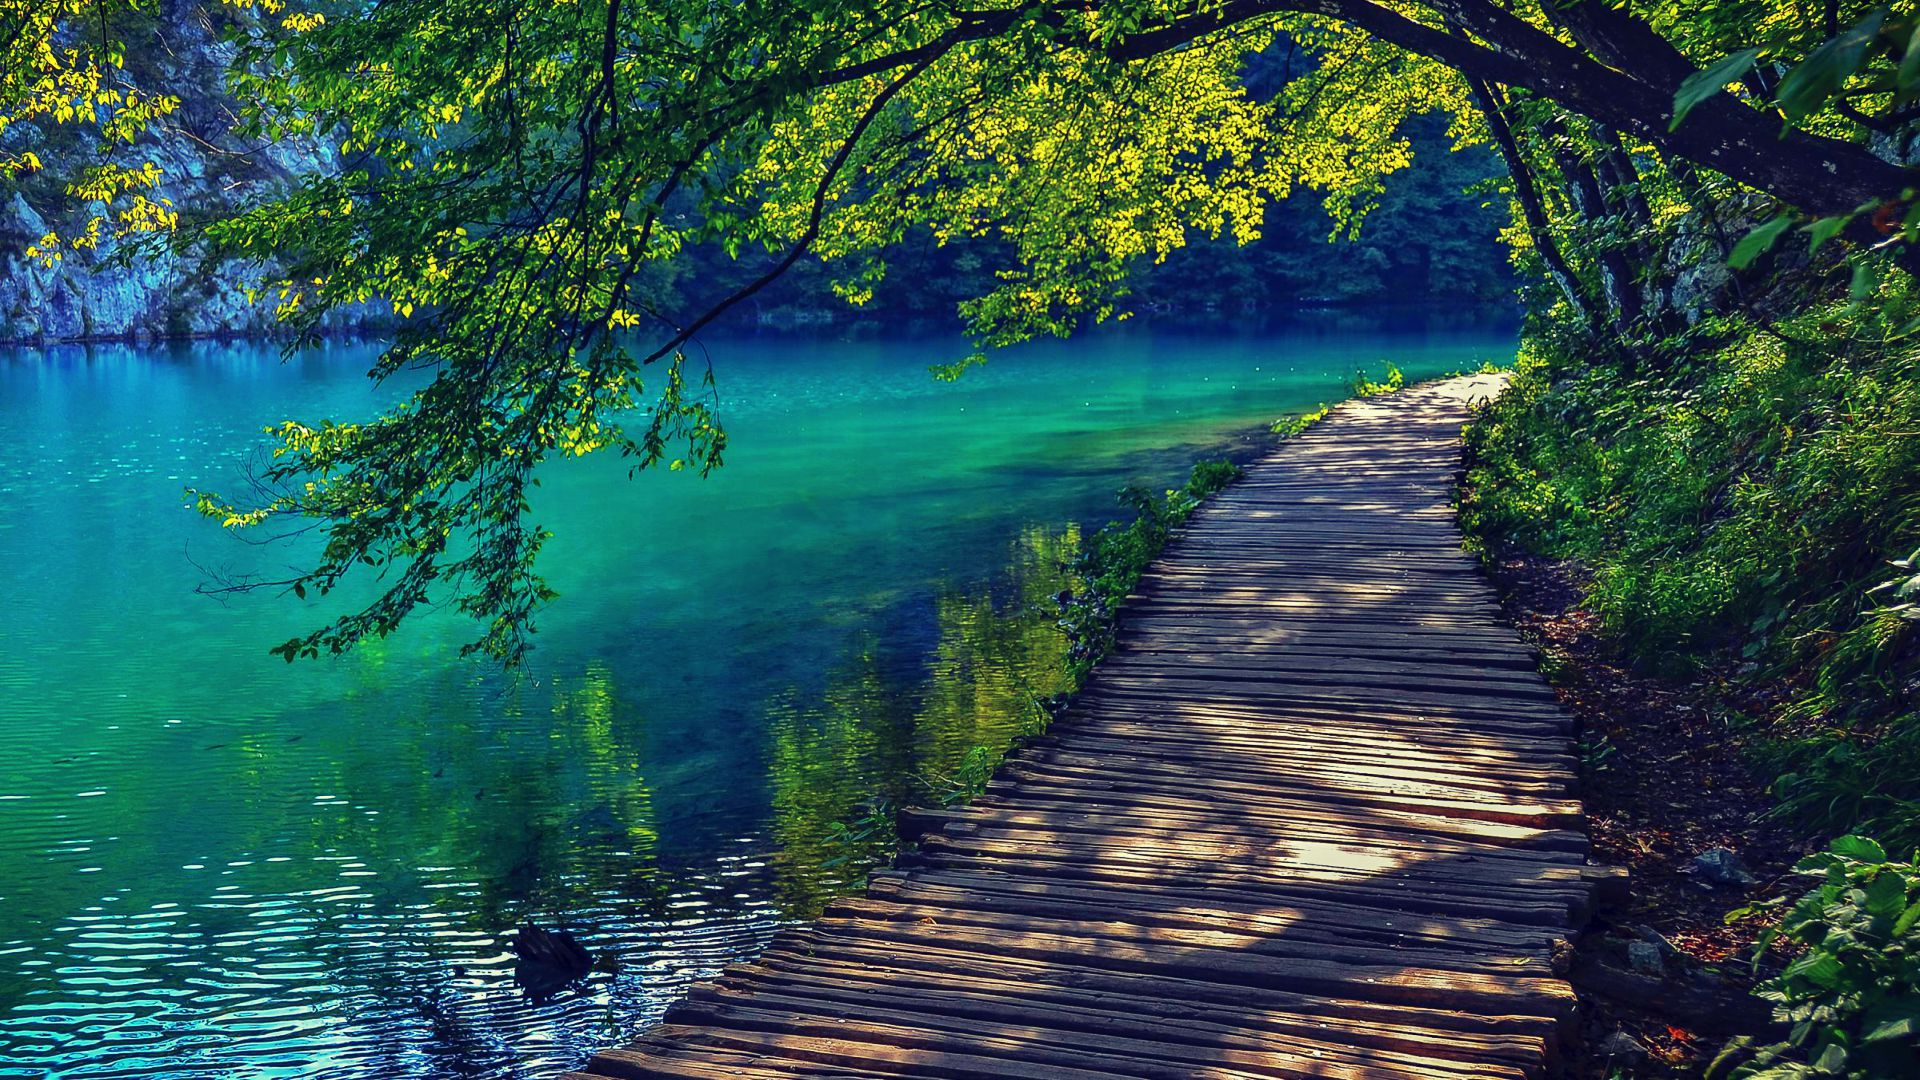 1080p Nature Wallpaper Of Slovenia Lake Bled Images